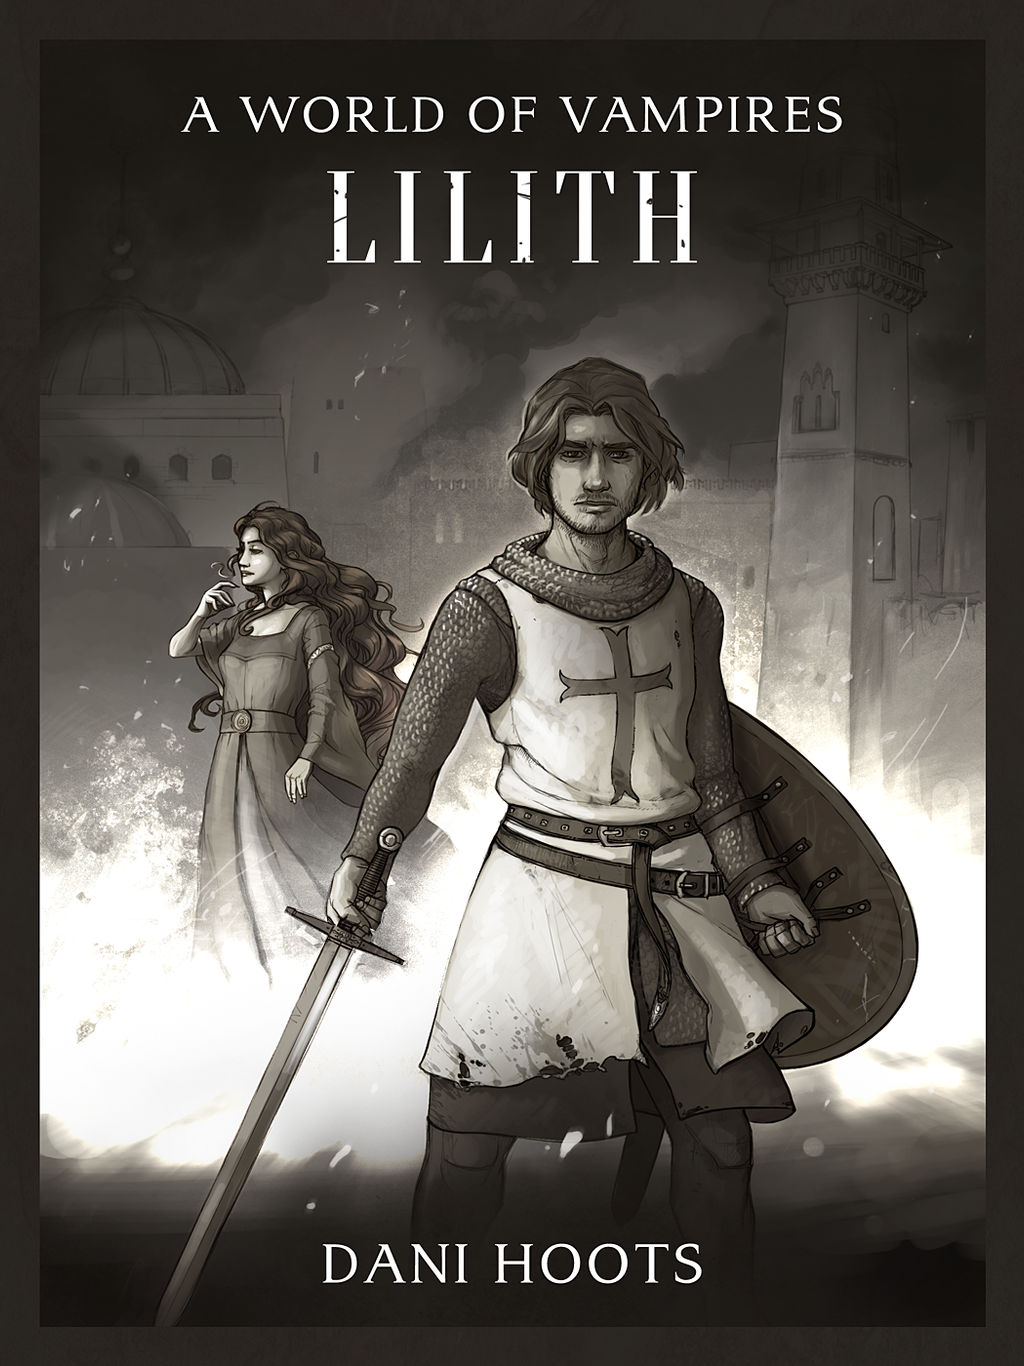 A World of Vampires: Lilith